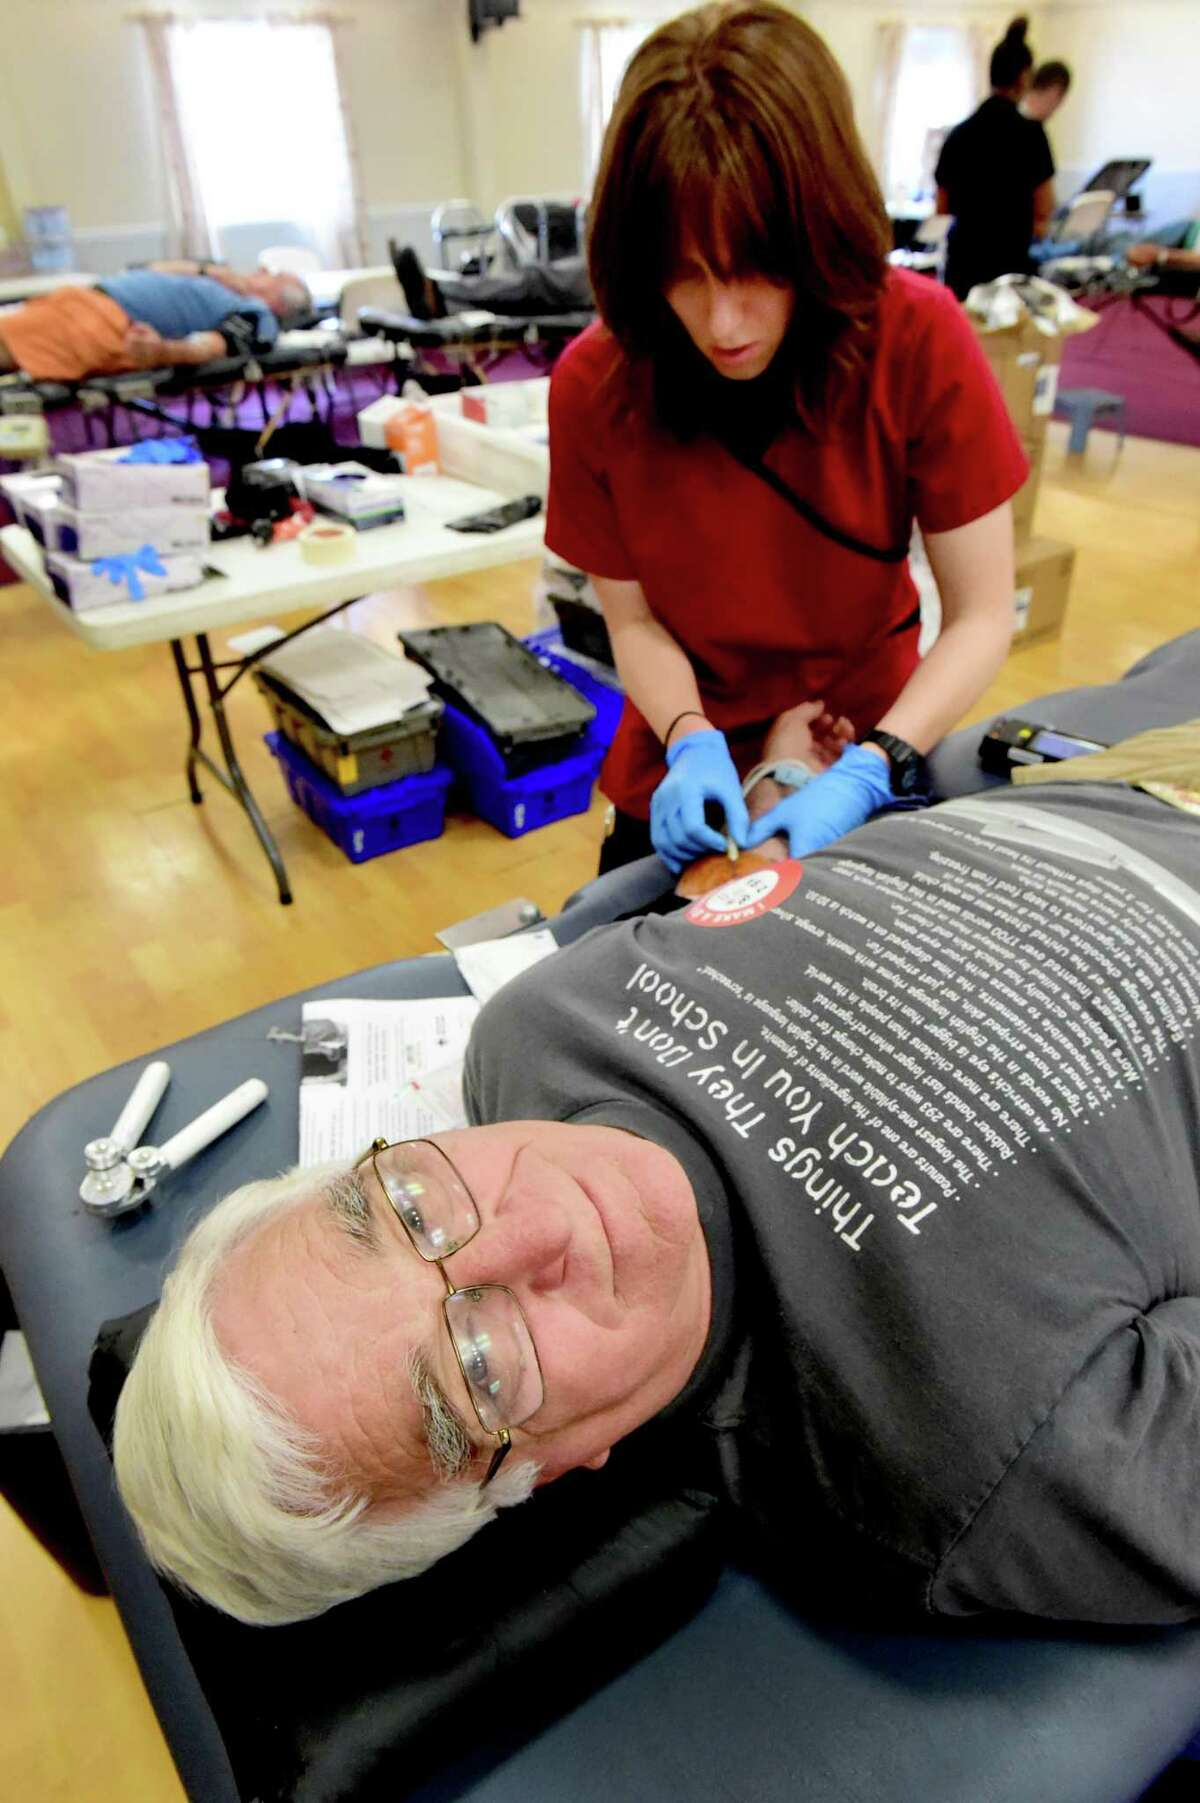 (Peter Hvizdak - New Haven Register) Blood donor William Mayer, Sr. of East Haven donates his 280th pint of blood with the American Red Cross Wednesday, July 13, 2016 at the Knights of Columbus Hall in Guilford with the help of American Red Cross collections technician Jessica Shucks. Mayer was award a special badge that honors the35 gallons total he has donated since age 17.